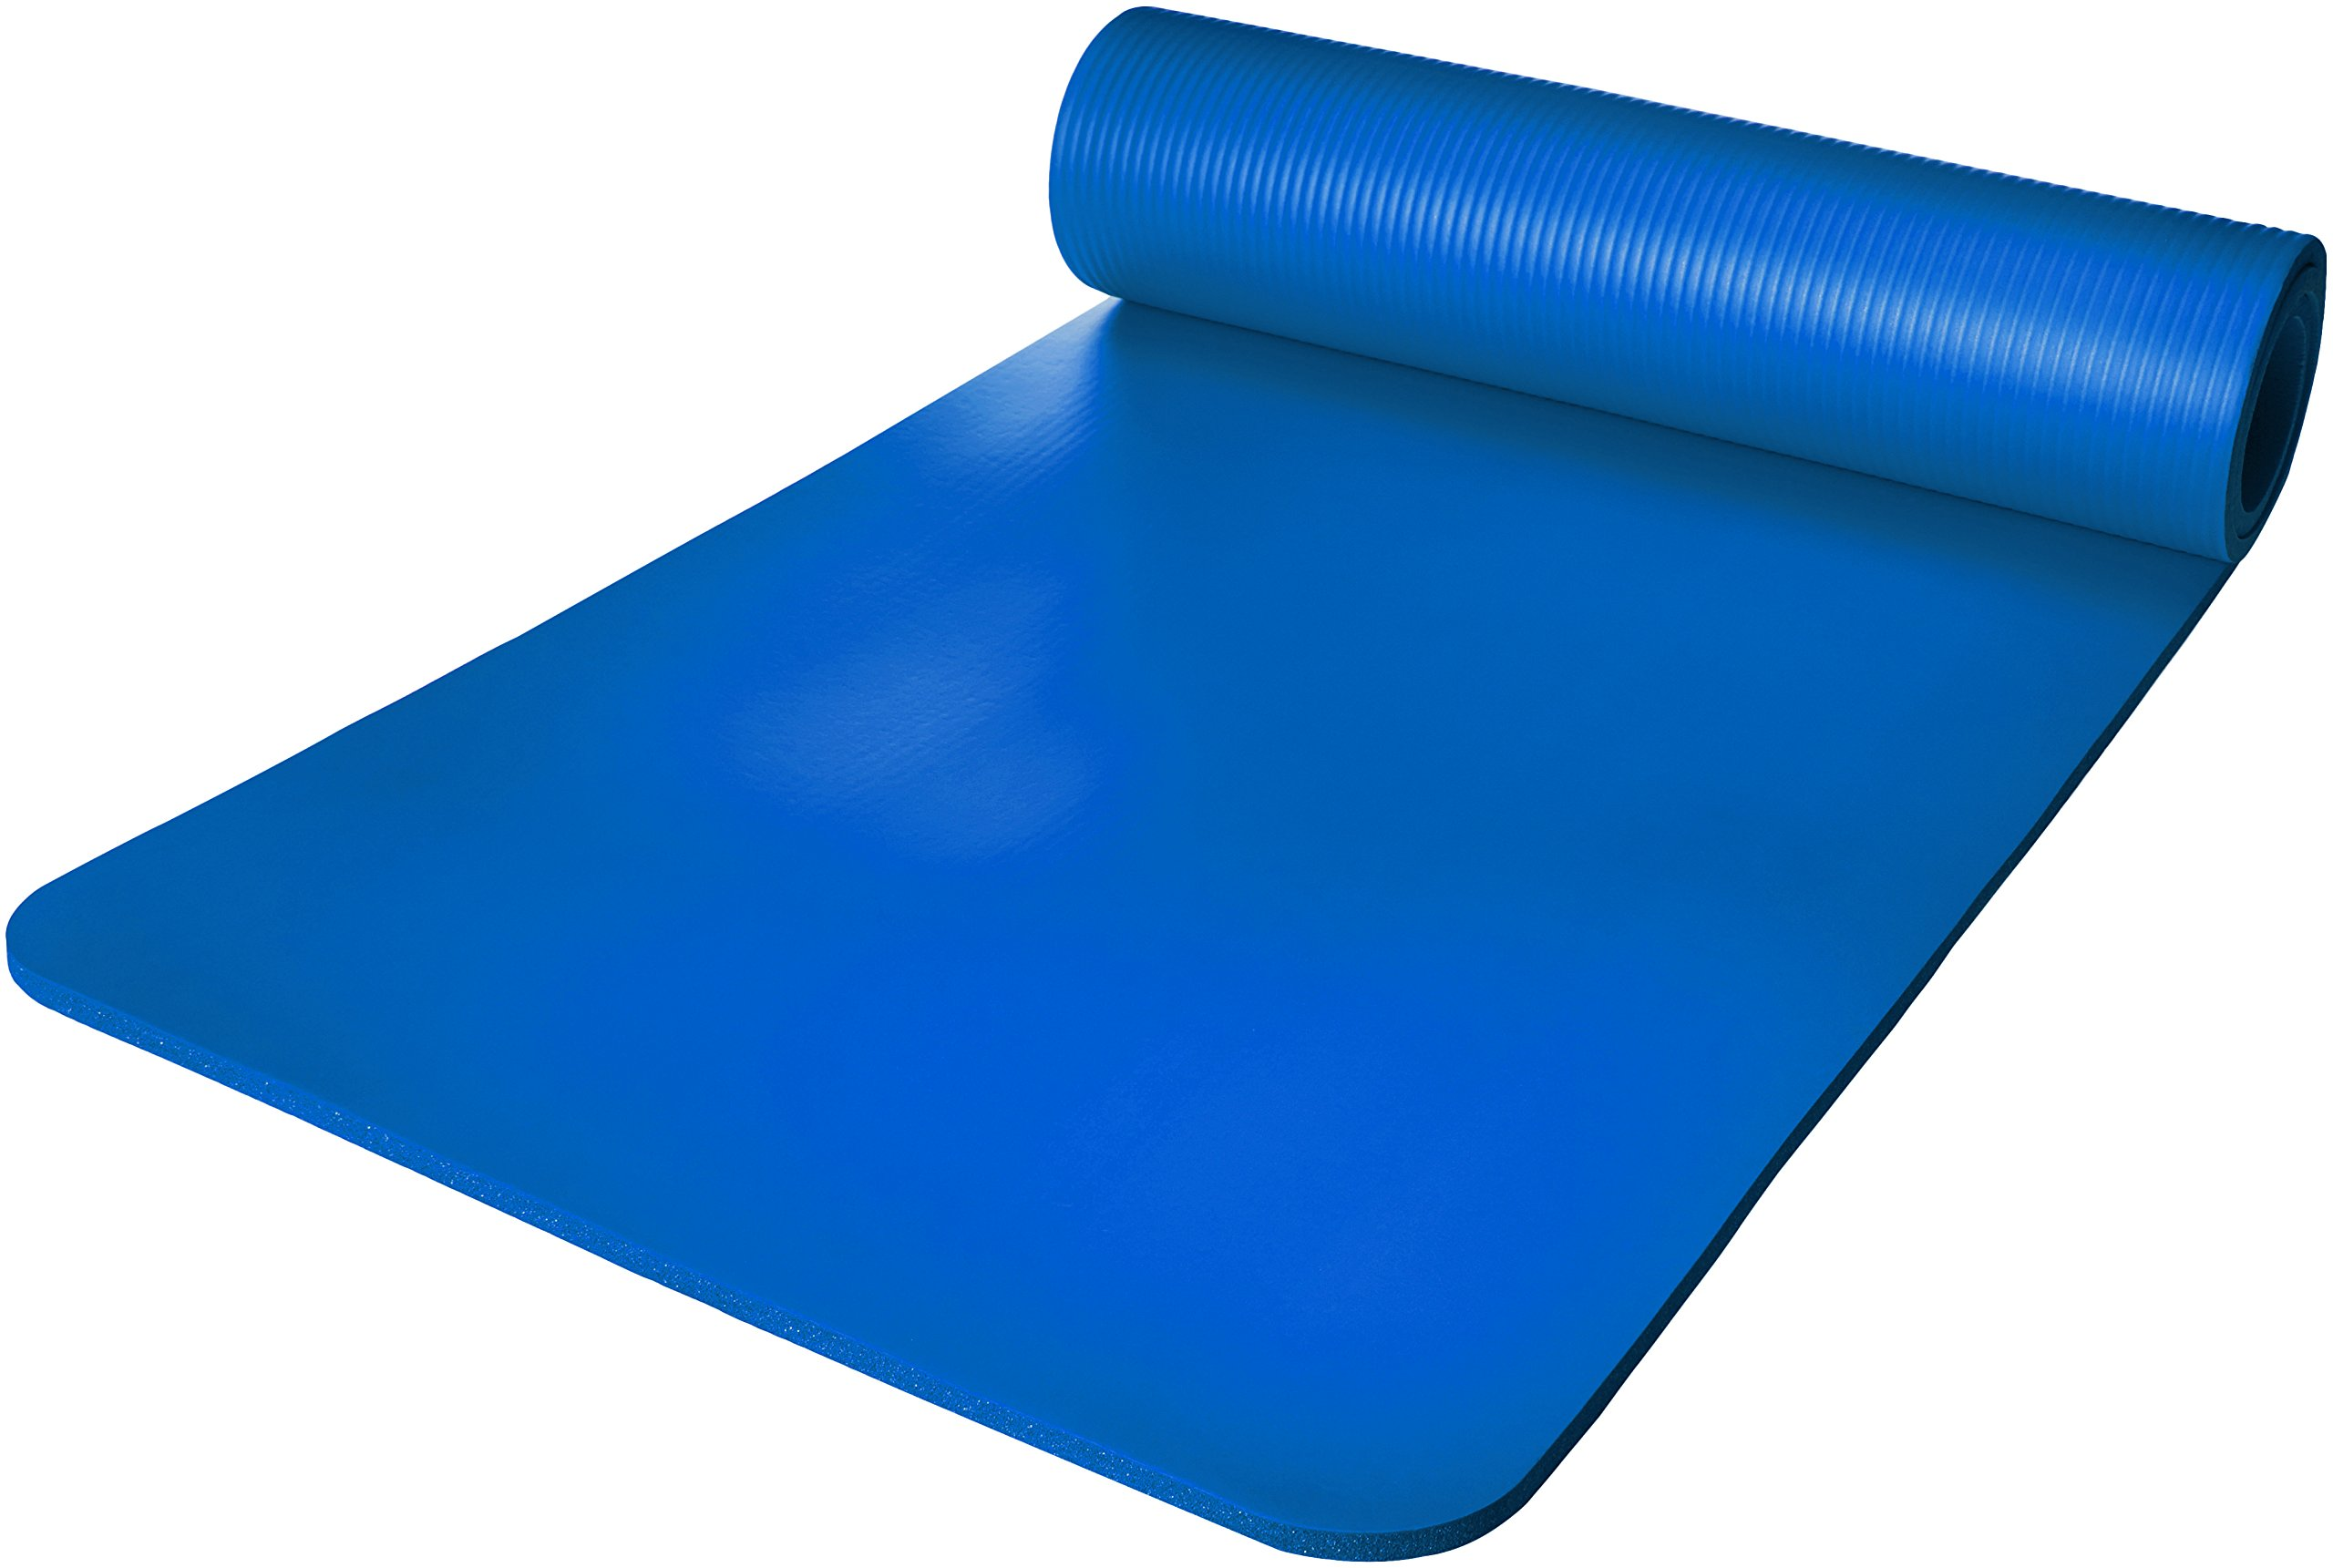 AmazonBasics 1/2 Inch Extra Thick Exercise Mat with Carrying Strap, Blue